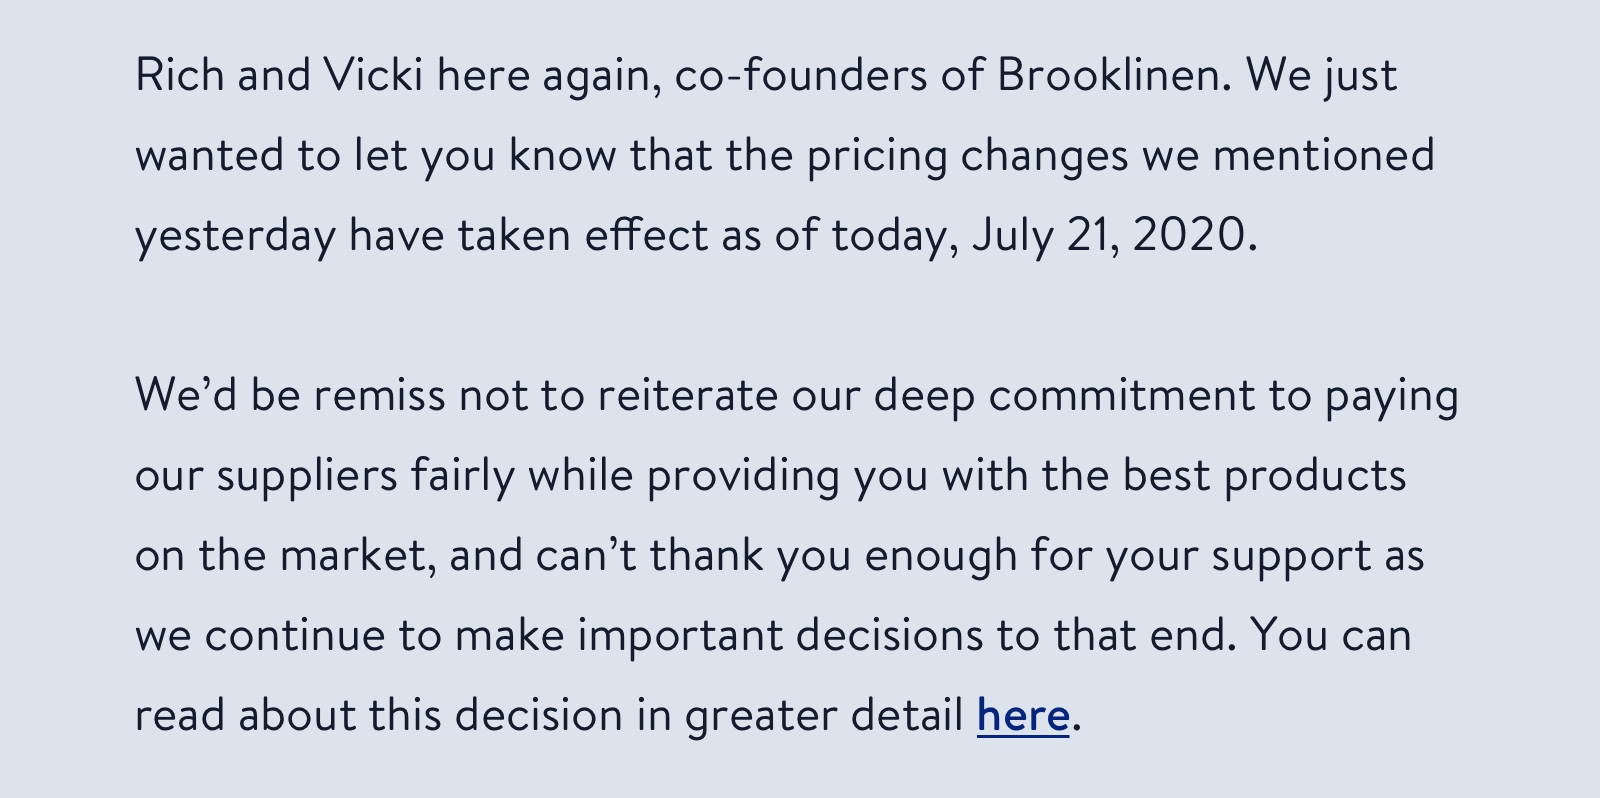 Rich and Vicki here again, co-founders of Brooklinen. We just wanted to let you know that the pricing changes we mentioned will go into effect as of July 21, 2020. We'd be remiss not to reiterate our deep commitment to paying our suppliers fairly while providing you with the best products on the market, and can't thank you enough for your support as we continue to make important decisions to that end.